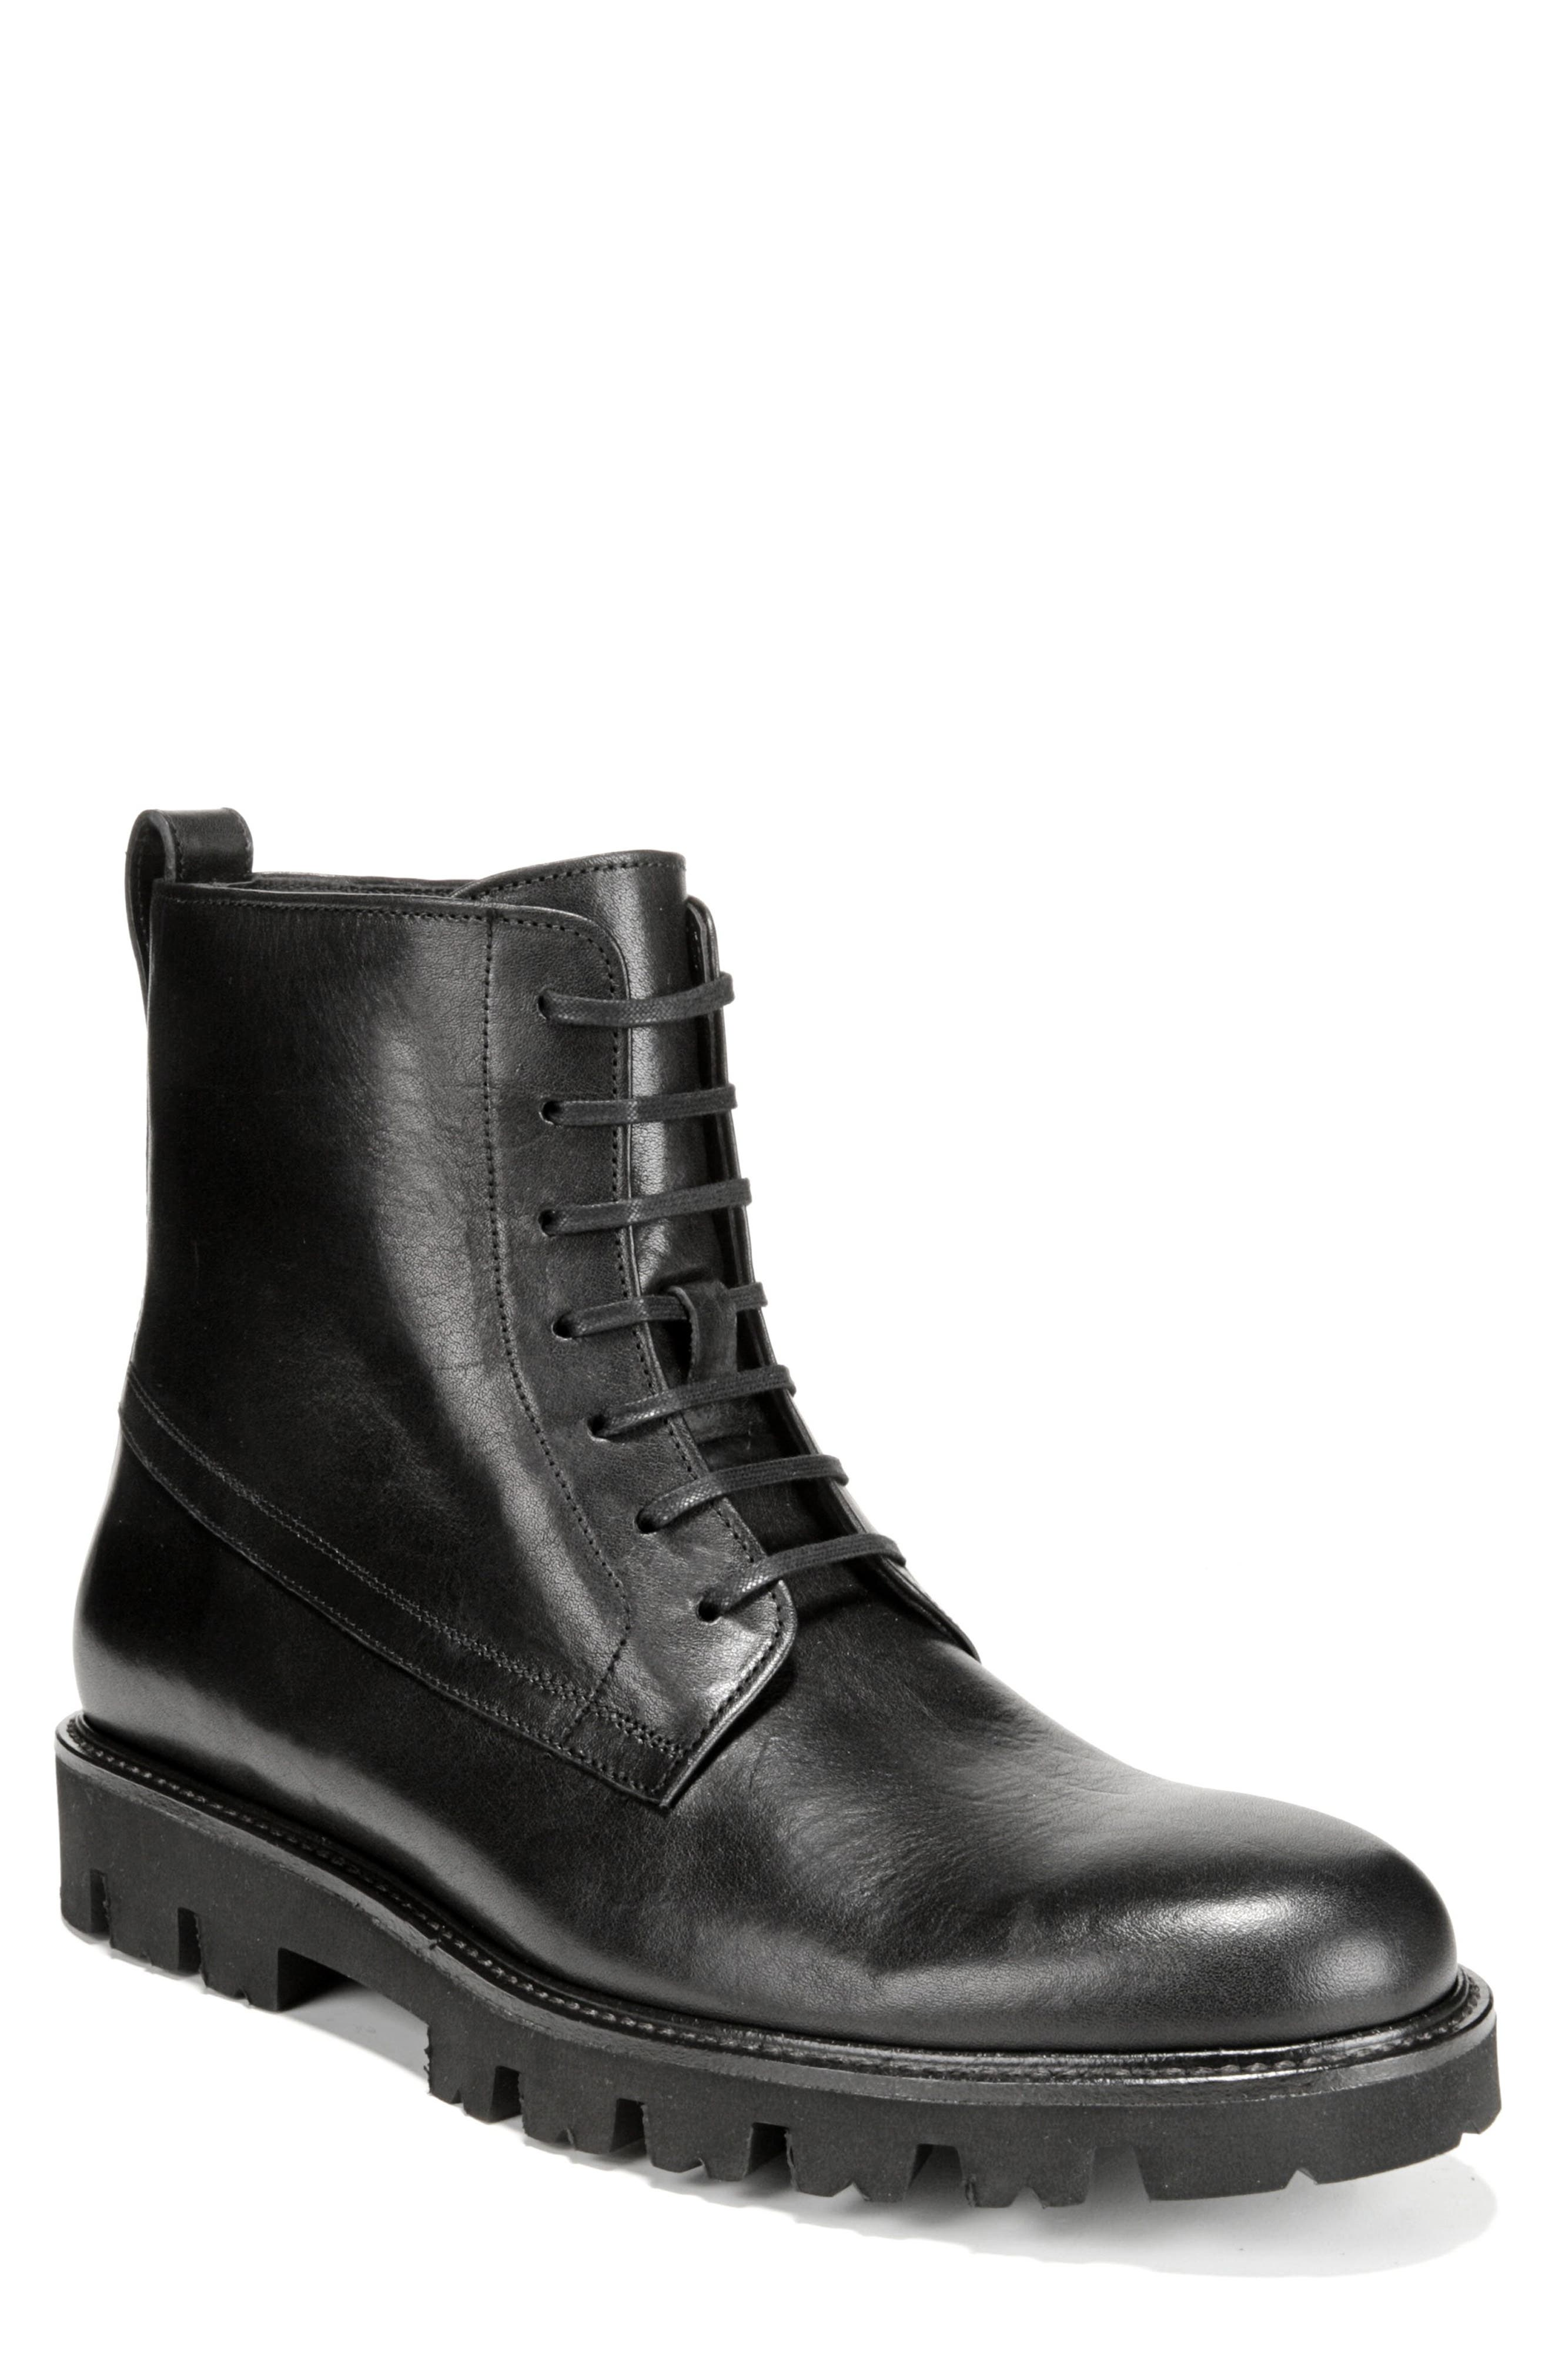 Commander Plain Toe Boot,                             Main thumbnail 1, color,                             Black